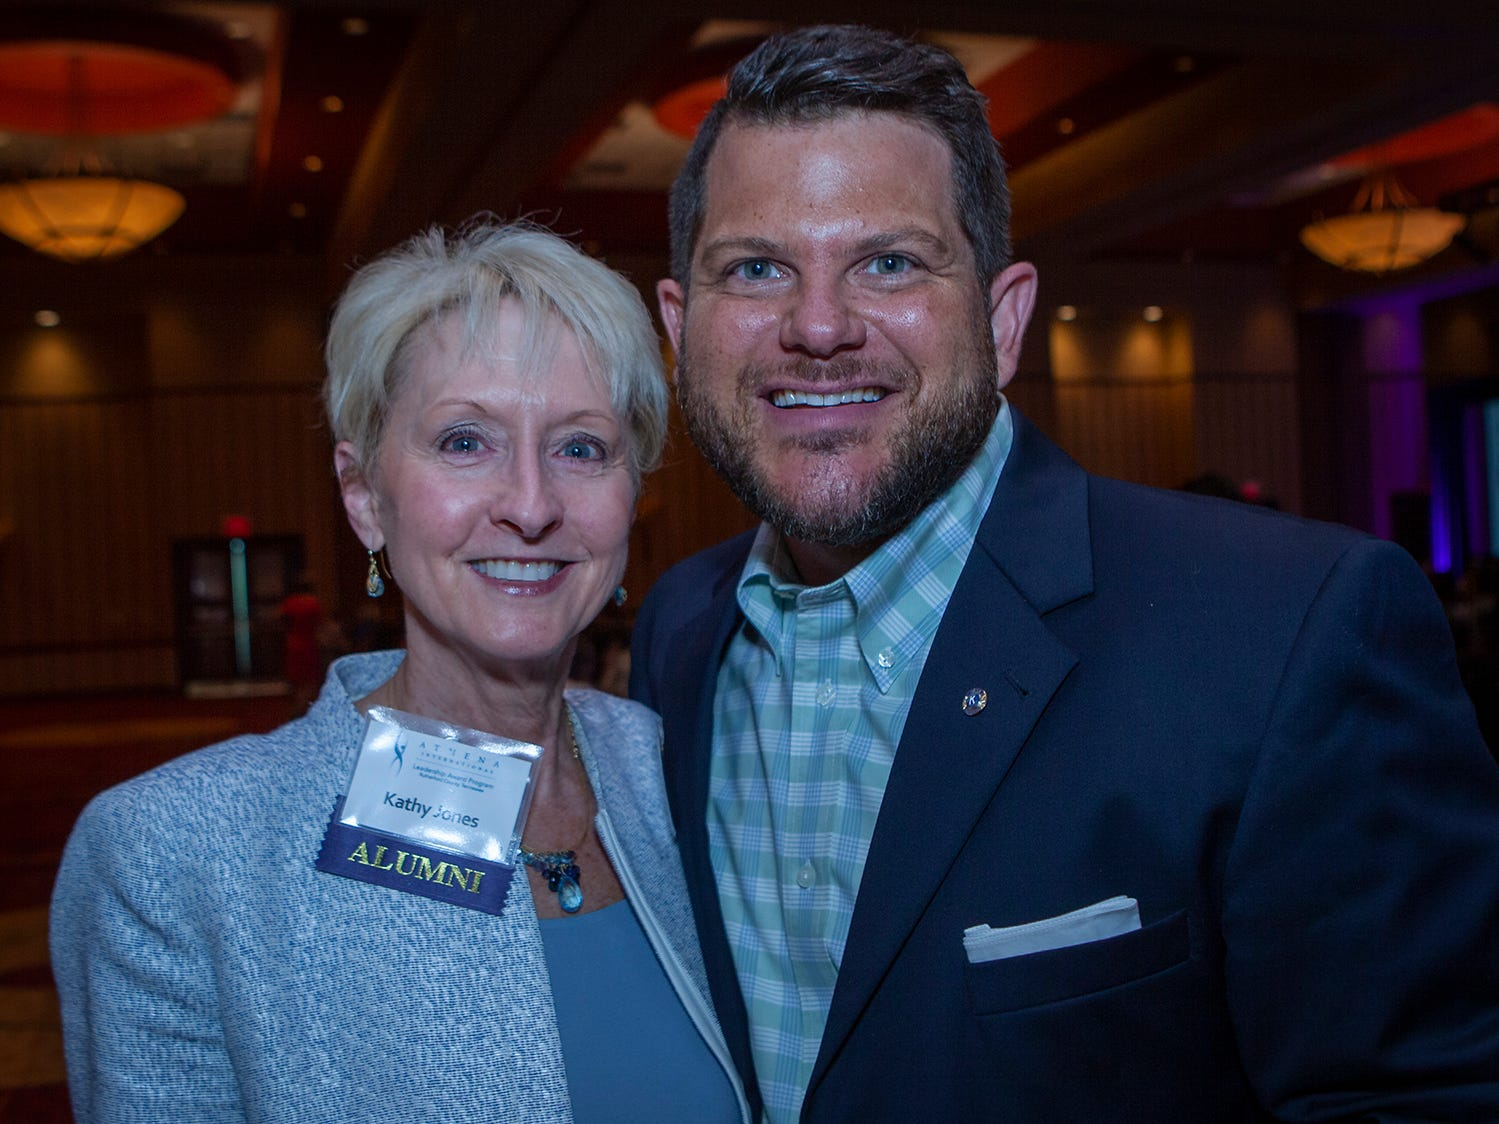 Kathy Jones and Justin Holder at the annual ATHENA Leadership Awards, hosted by Rutherford Cable Friday, April 12, 2019 at Embassy Suites Murfreesboro.